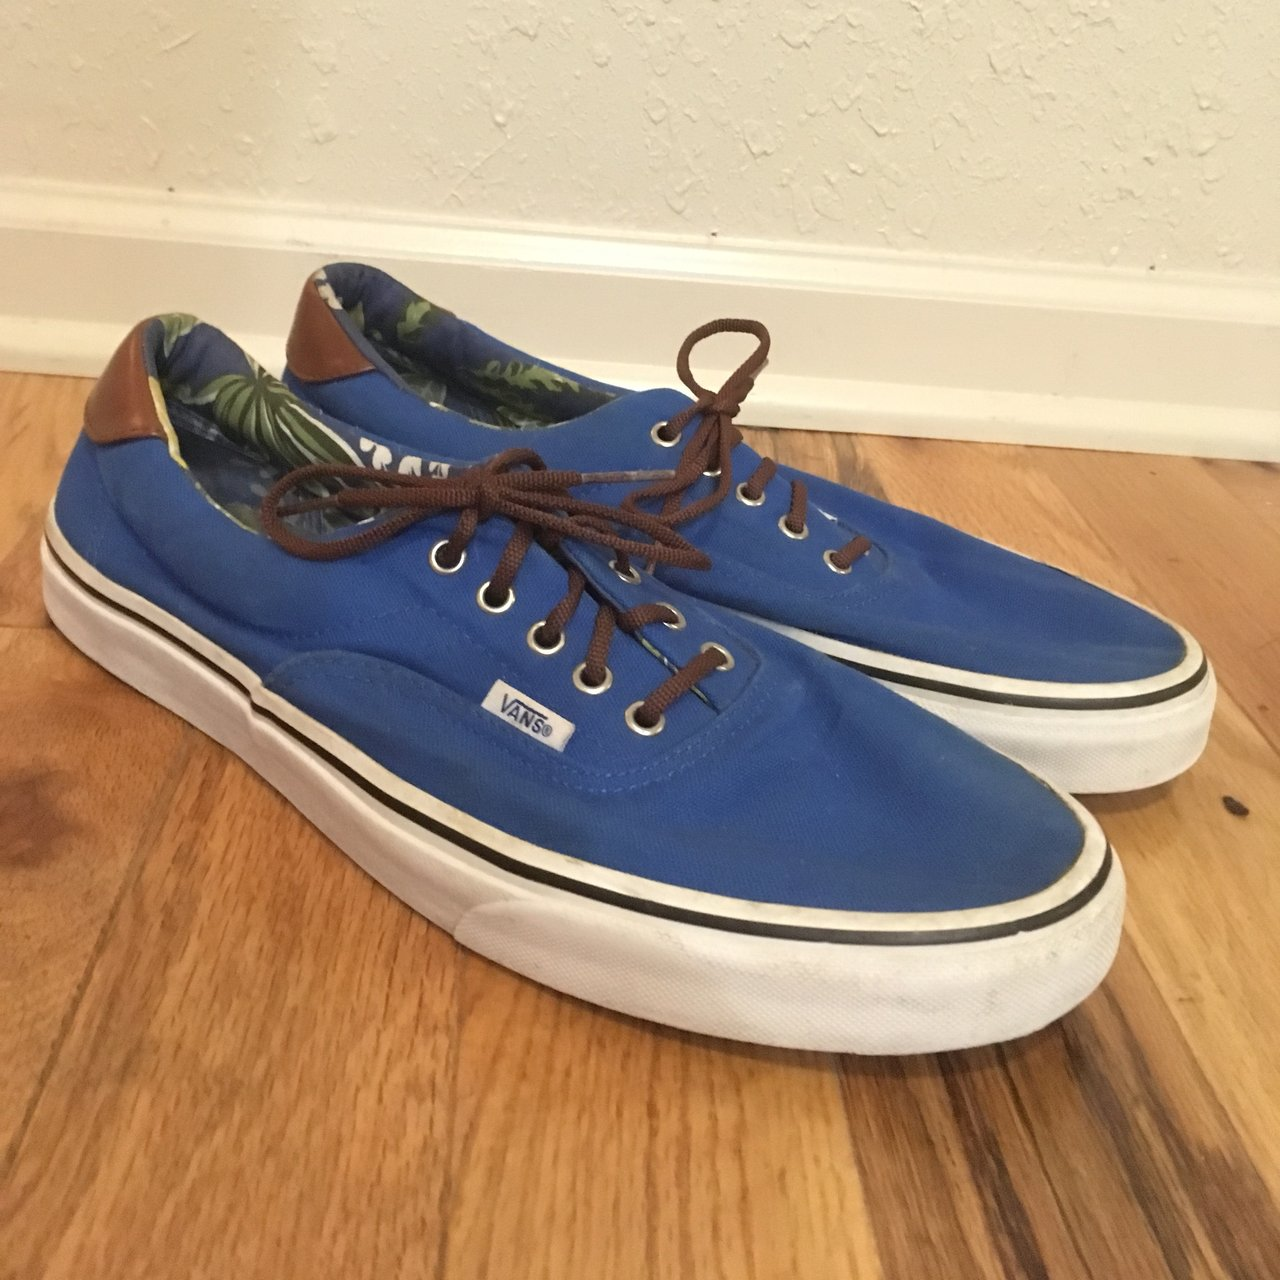 Men s Blue Vans Size  13 Condition  7 10 Used condition. - Depop b3f2fac05